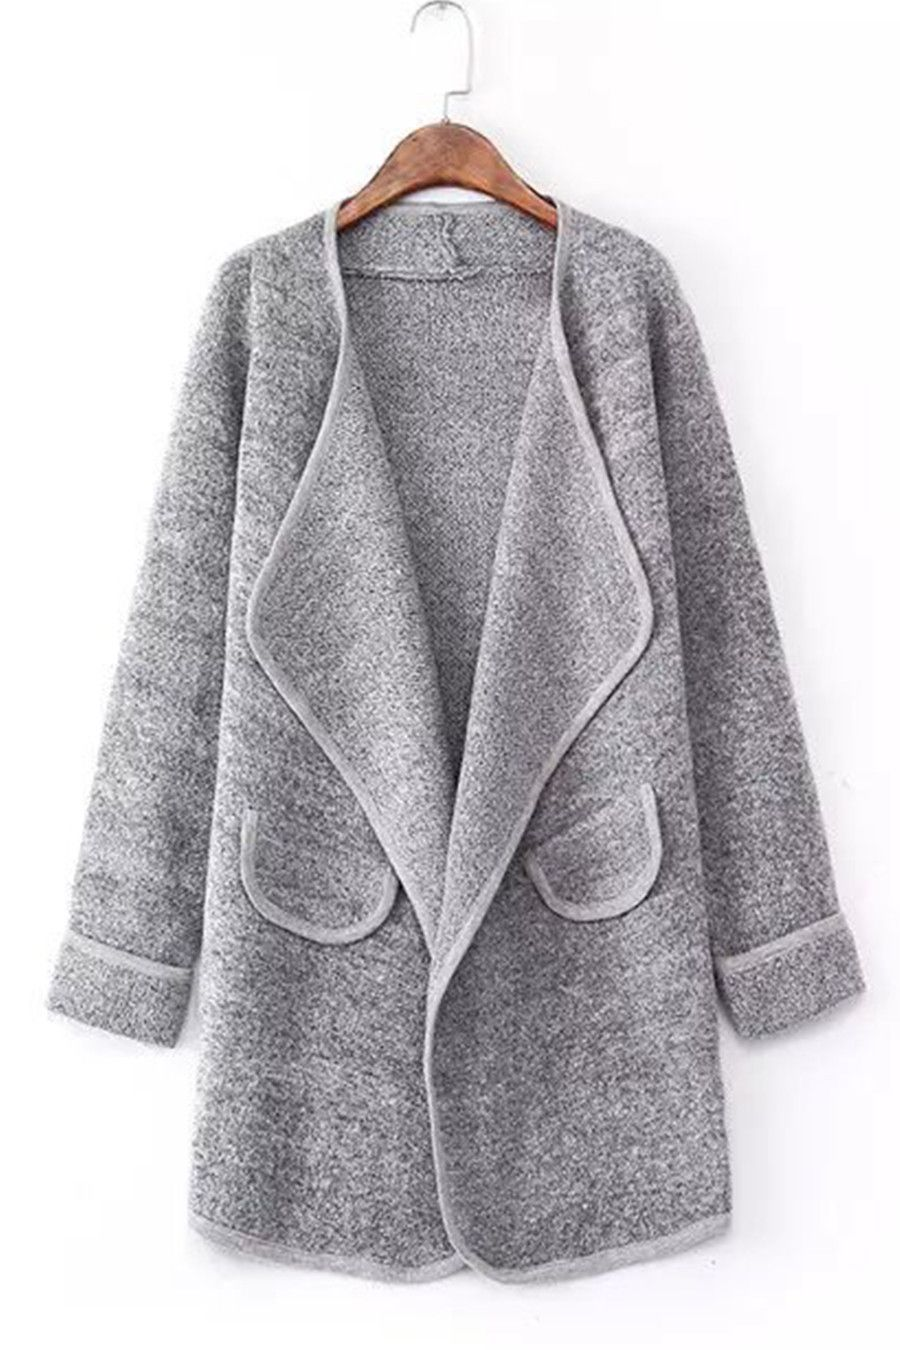 Vintage Gray Long Sleeve Lapel Loose Cardigan | Knit Tops And ...